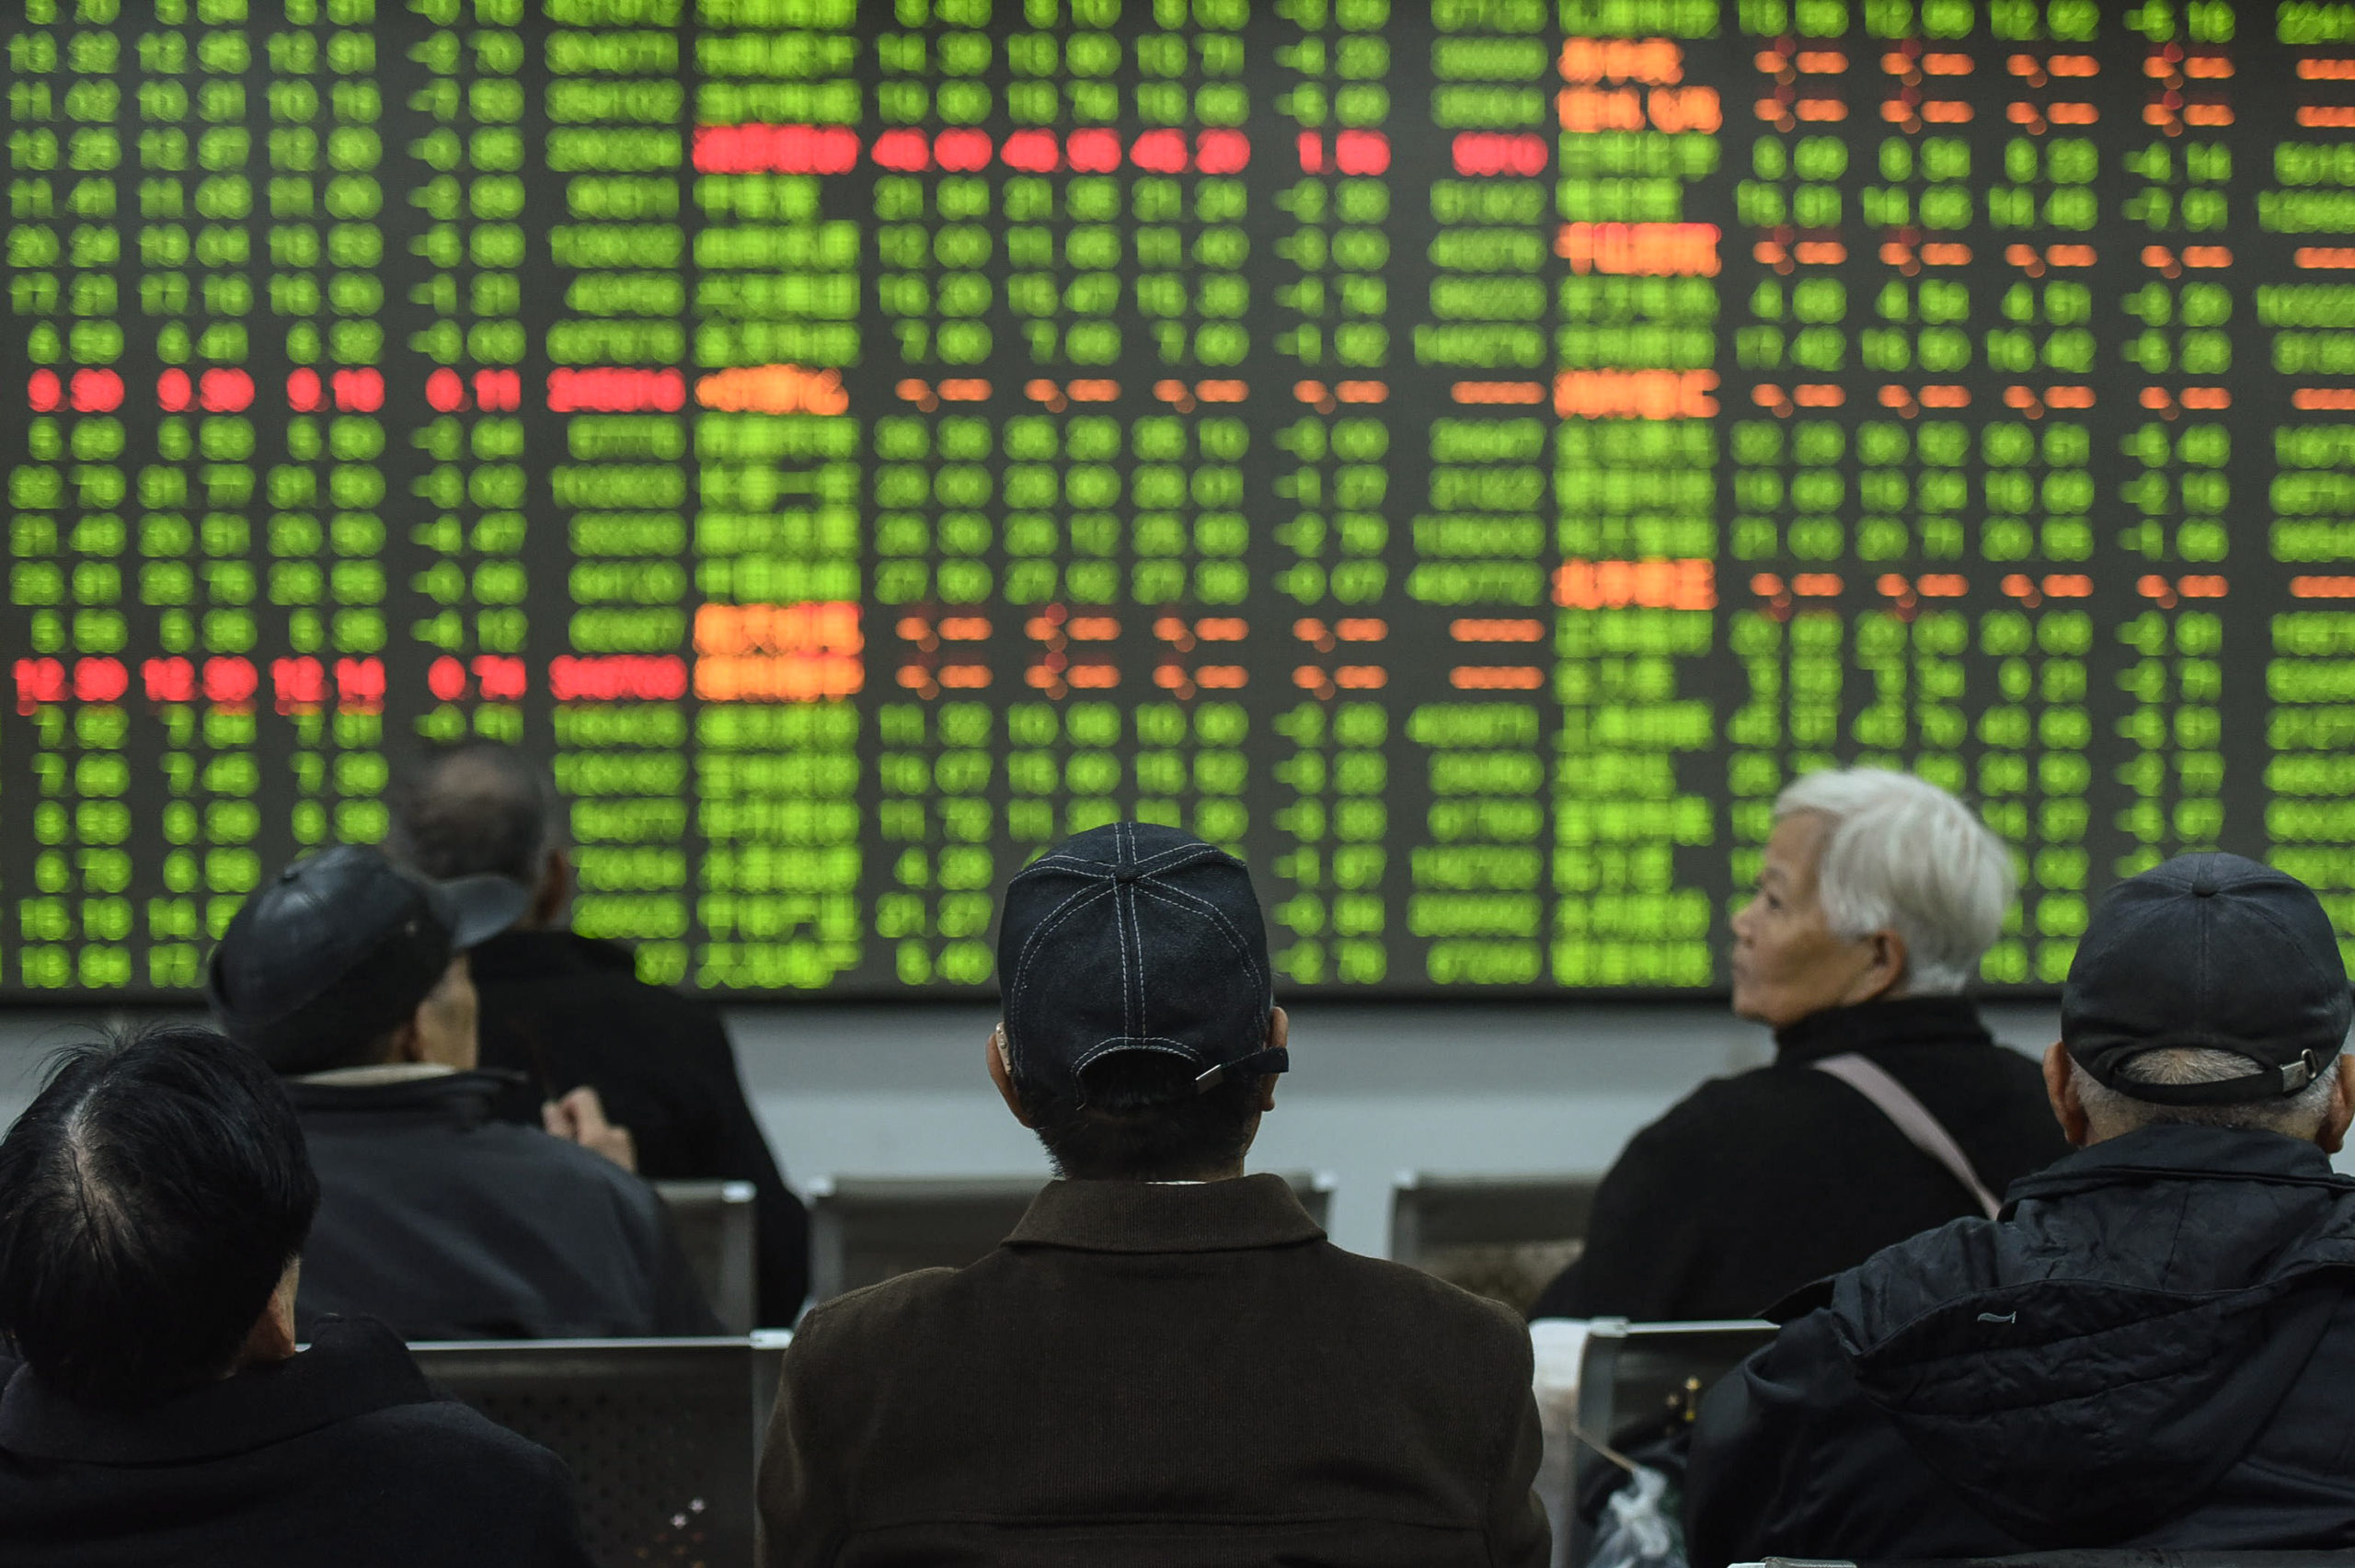 Asia pares losses on bargain-buying but inflation fears remain